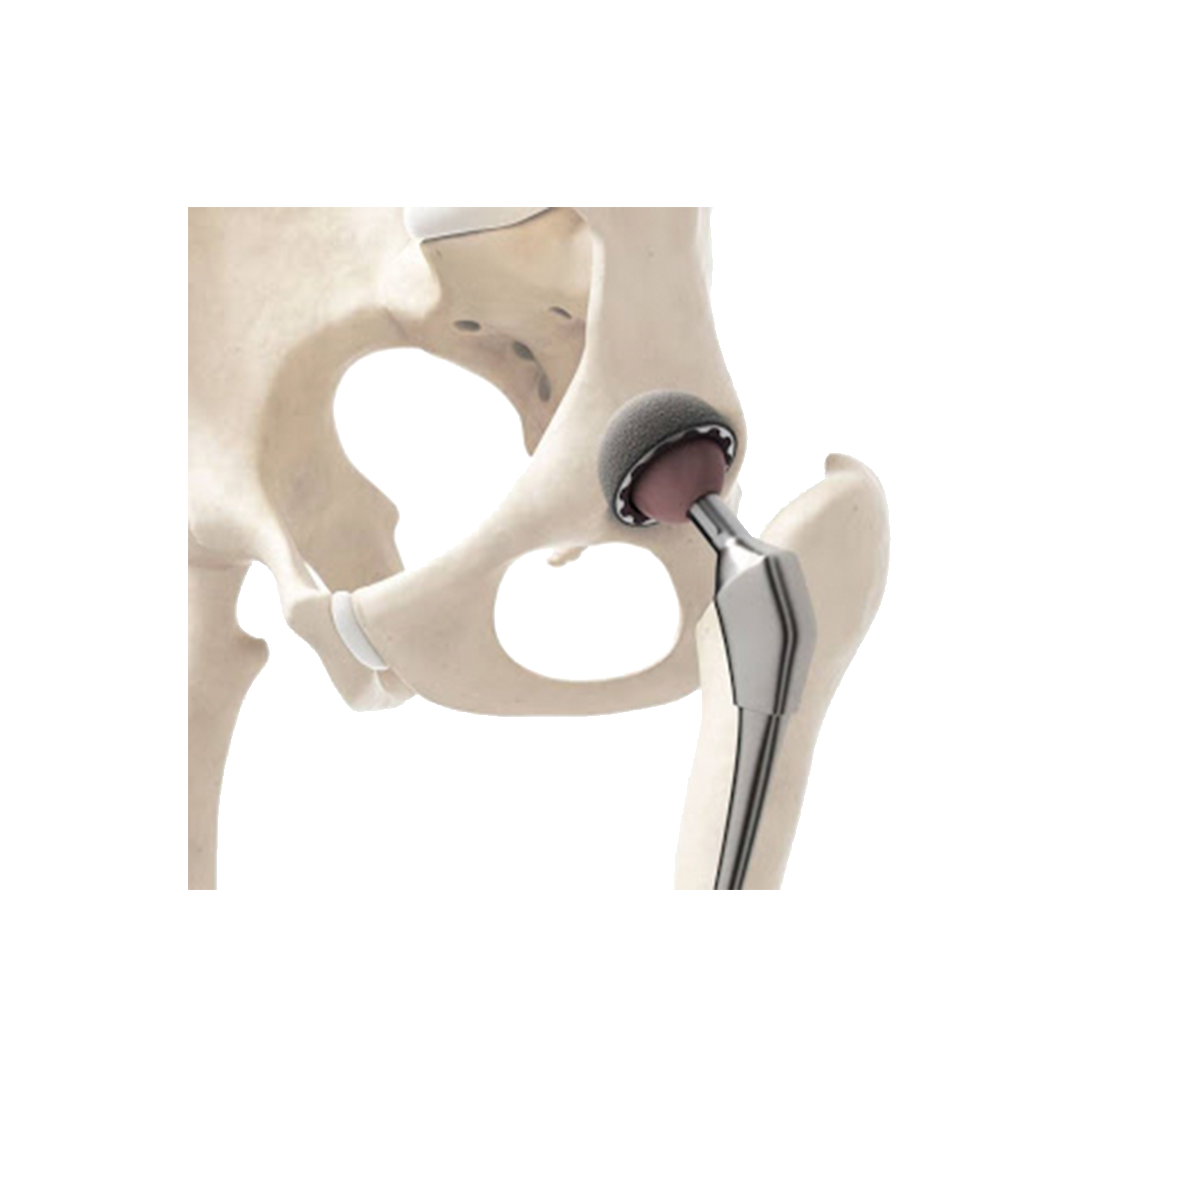 Femoral head prosthesis